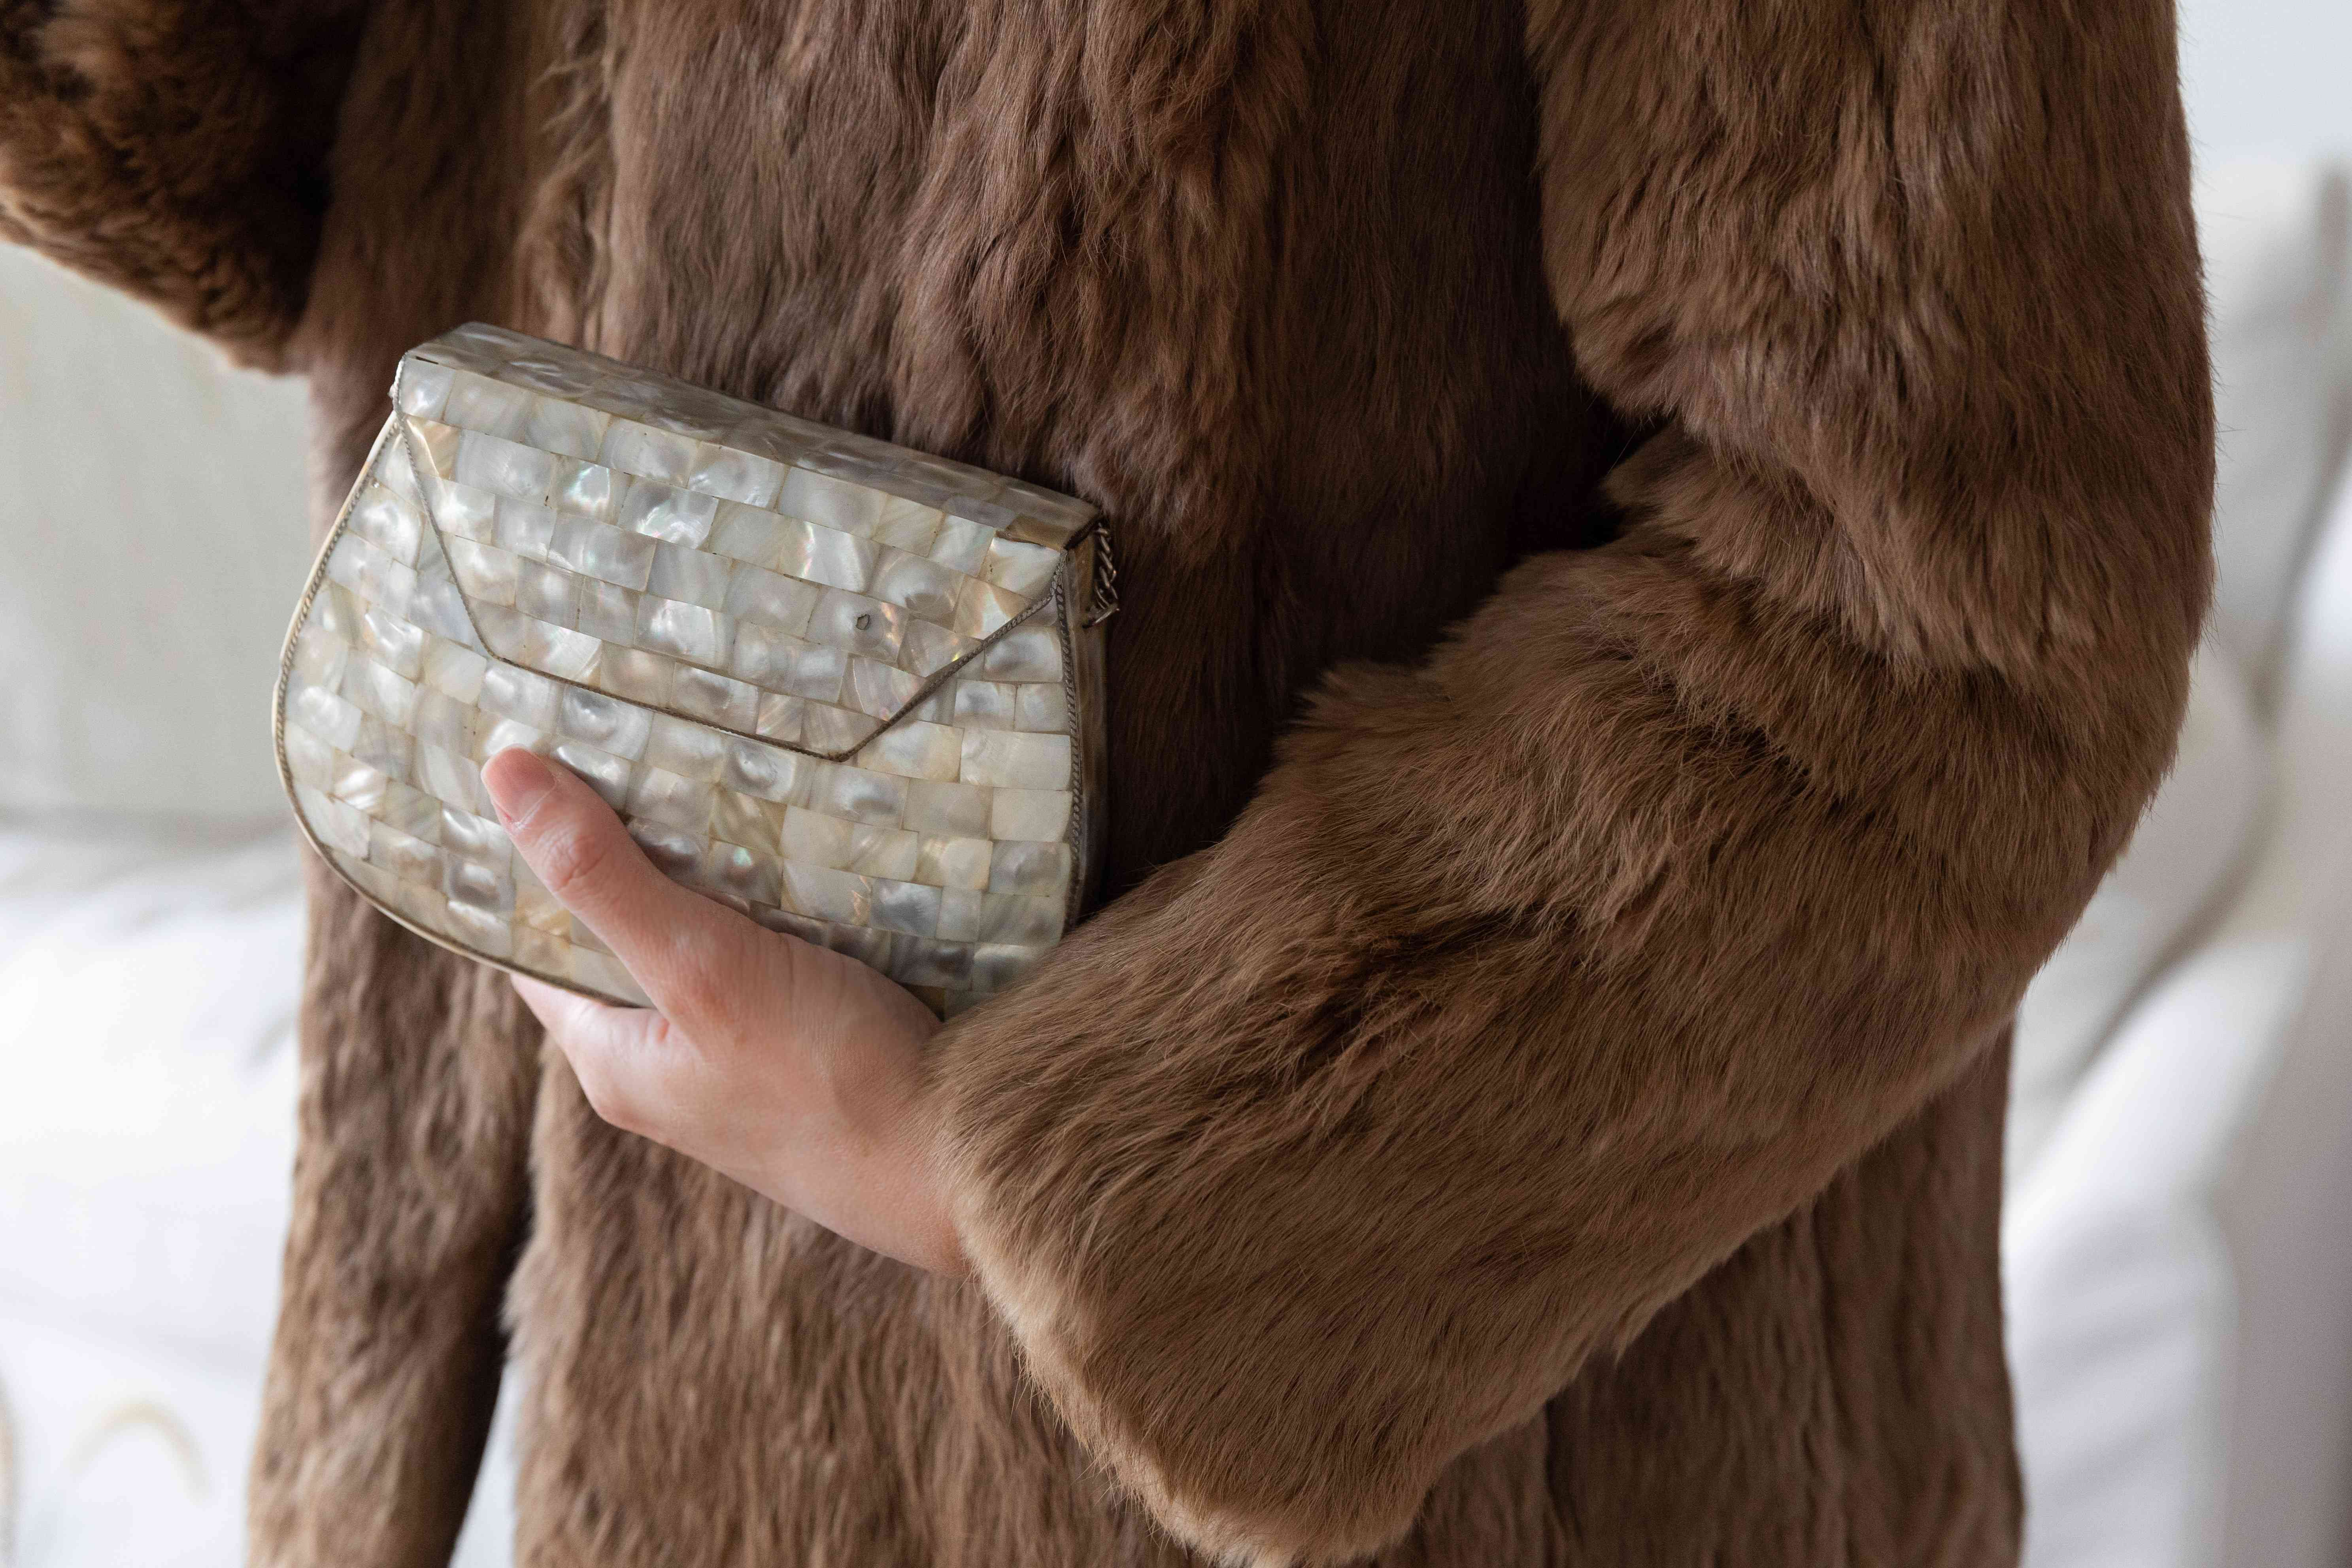 Someone wearing a brown fur coat and holding a clutch purse